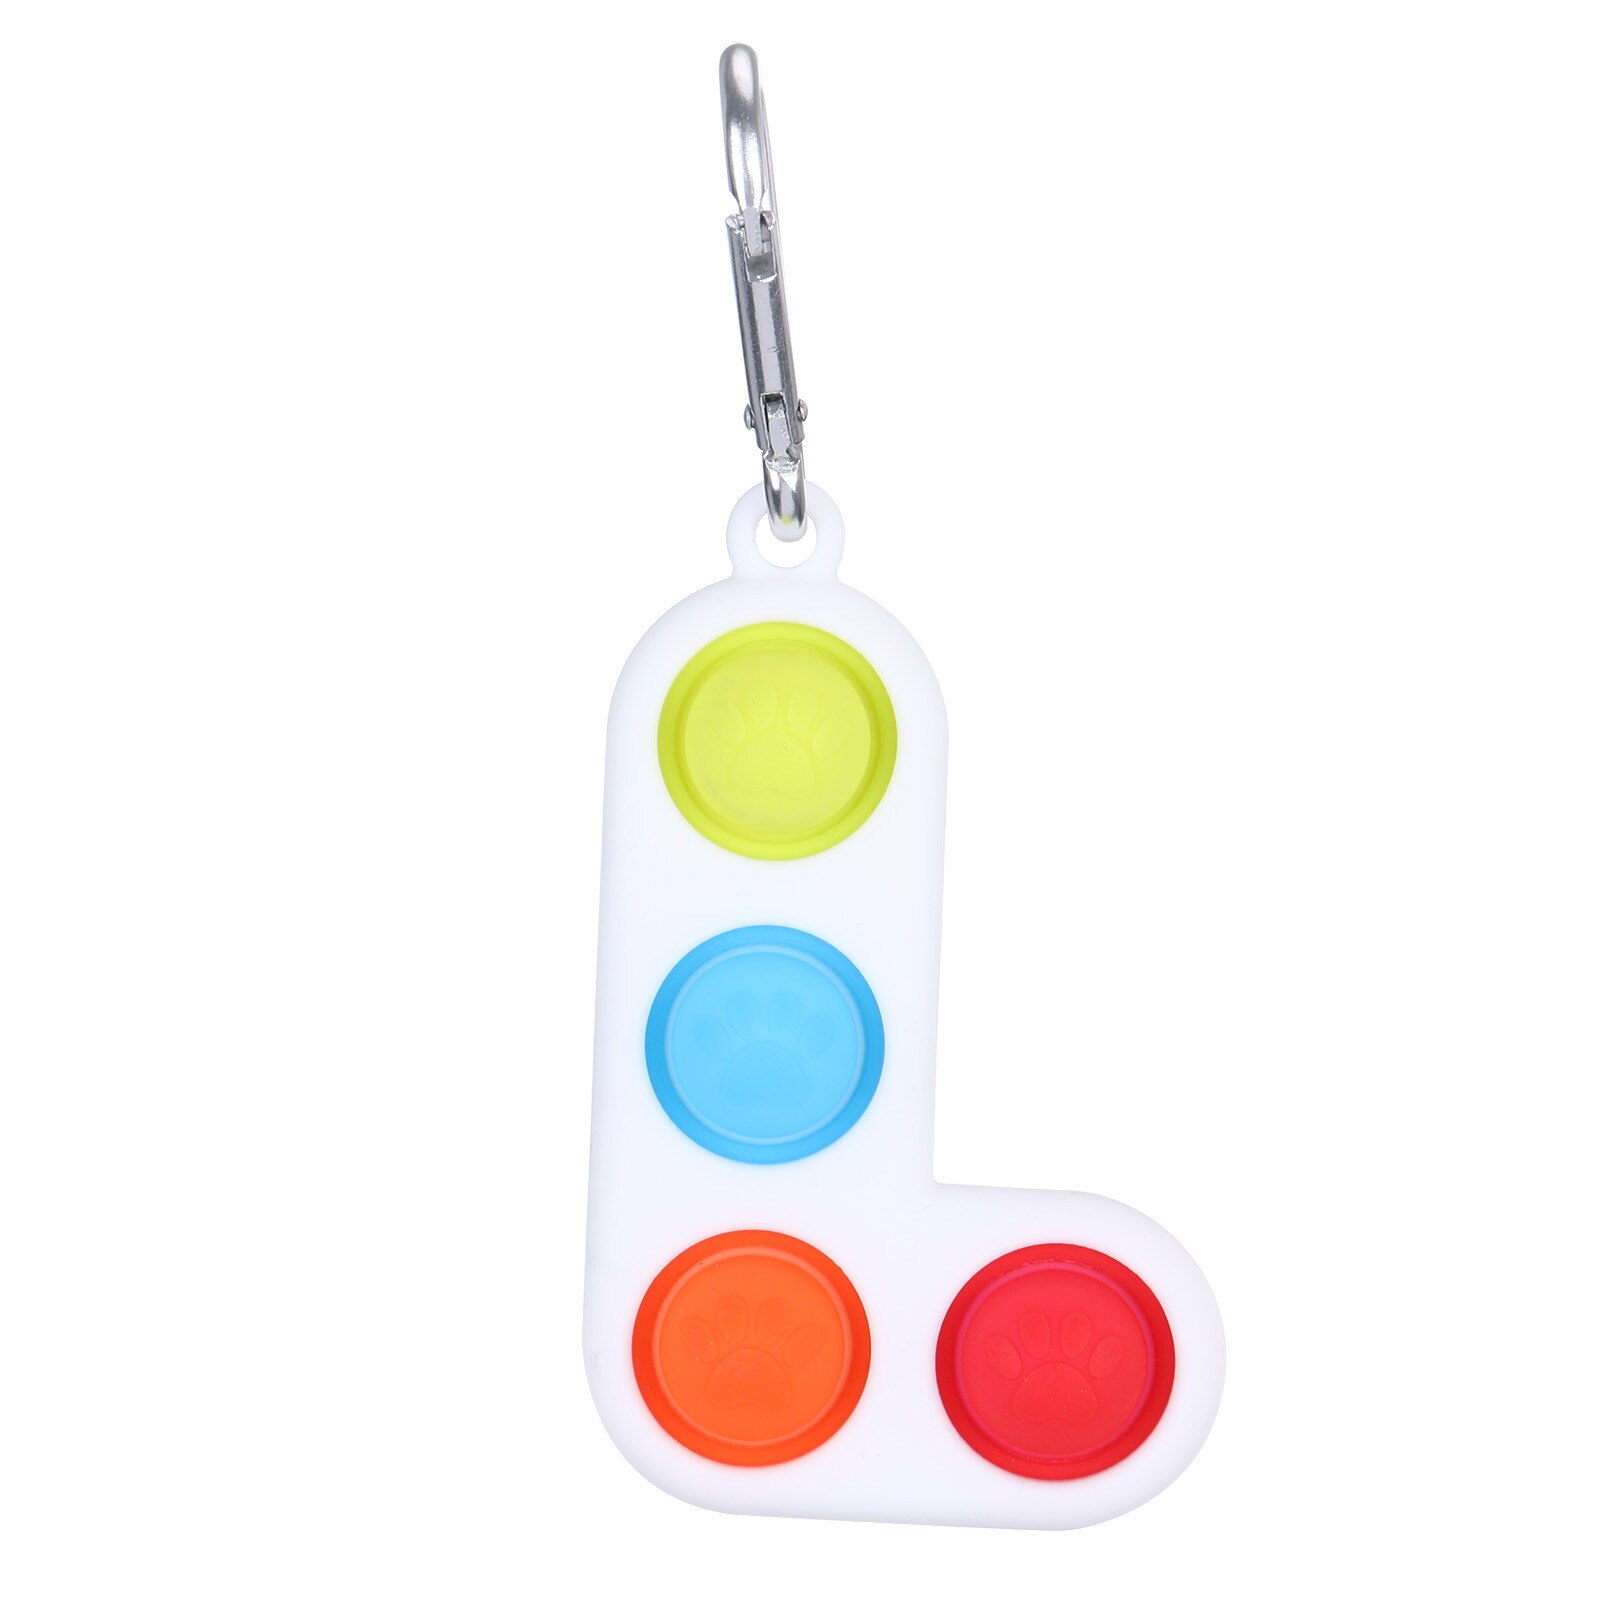 Simple Dimple Fidget Toy Small Fidget Toys Popit Figet Toys Stress Relief For Kids Adults Early 10 - Popping Fidgets